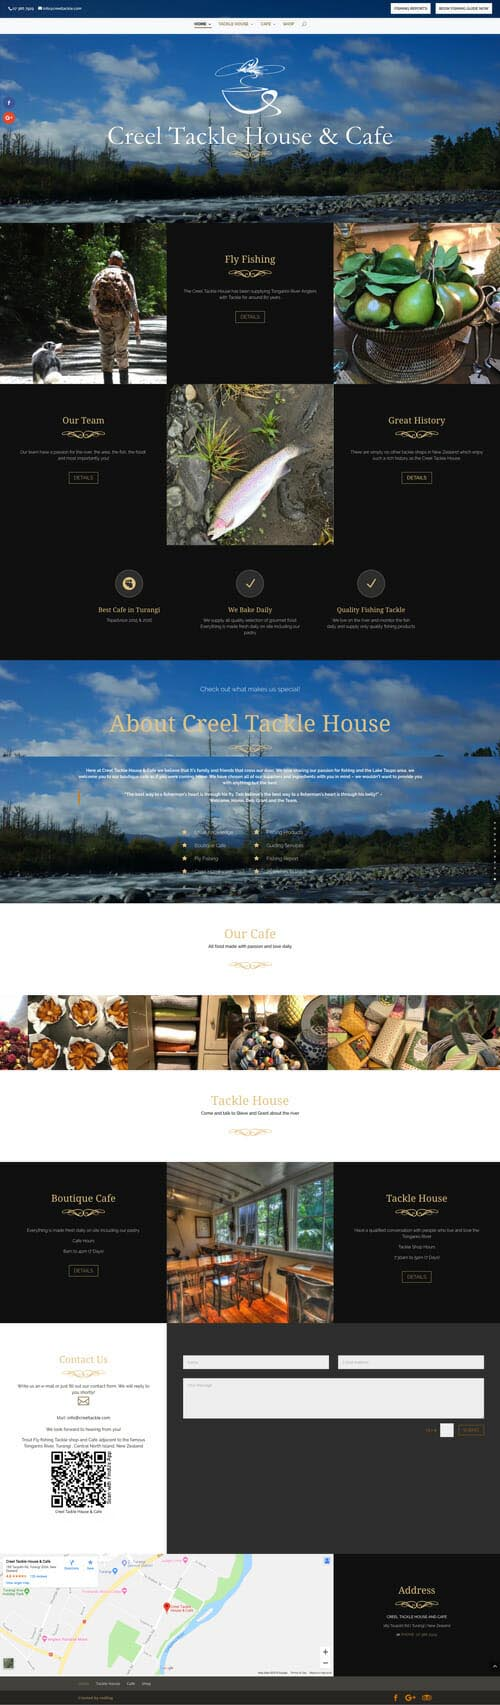 Creel Tackle House and Cafe Website Design and Development